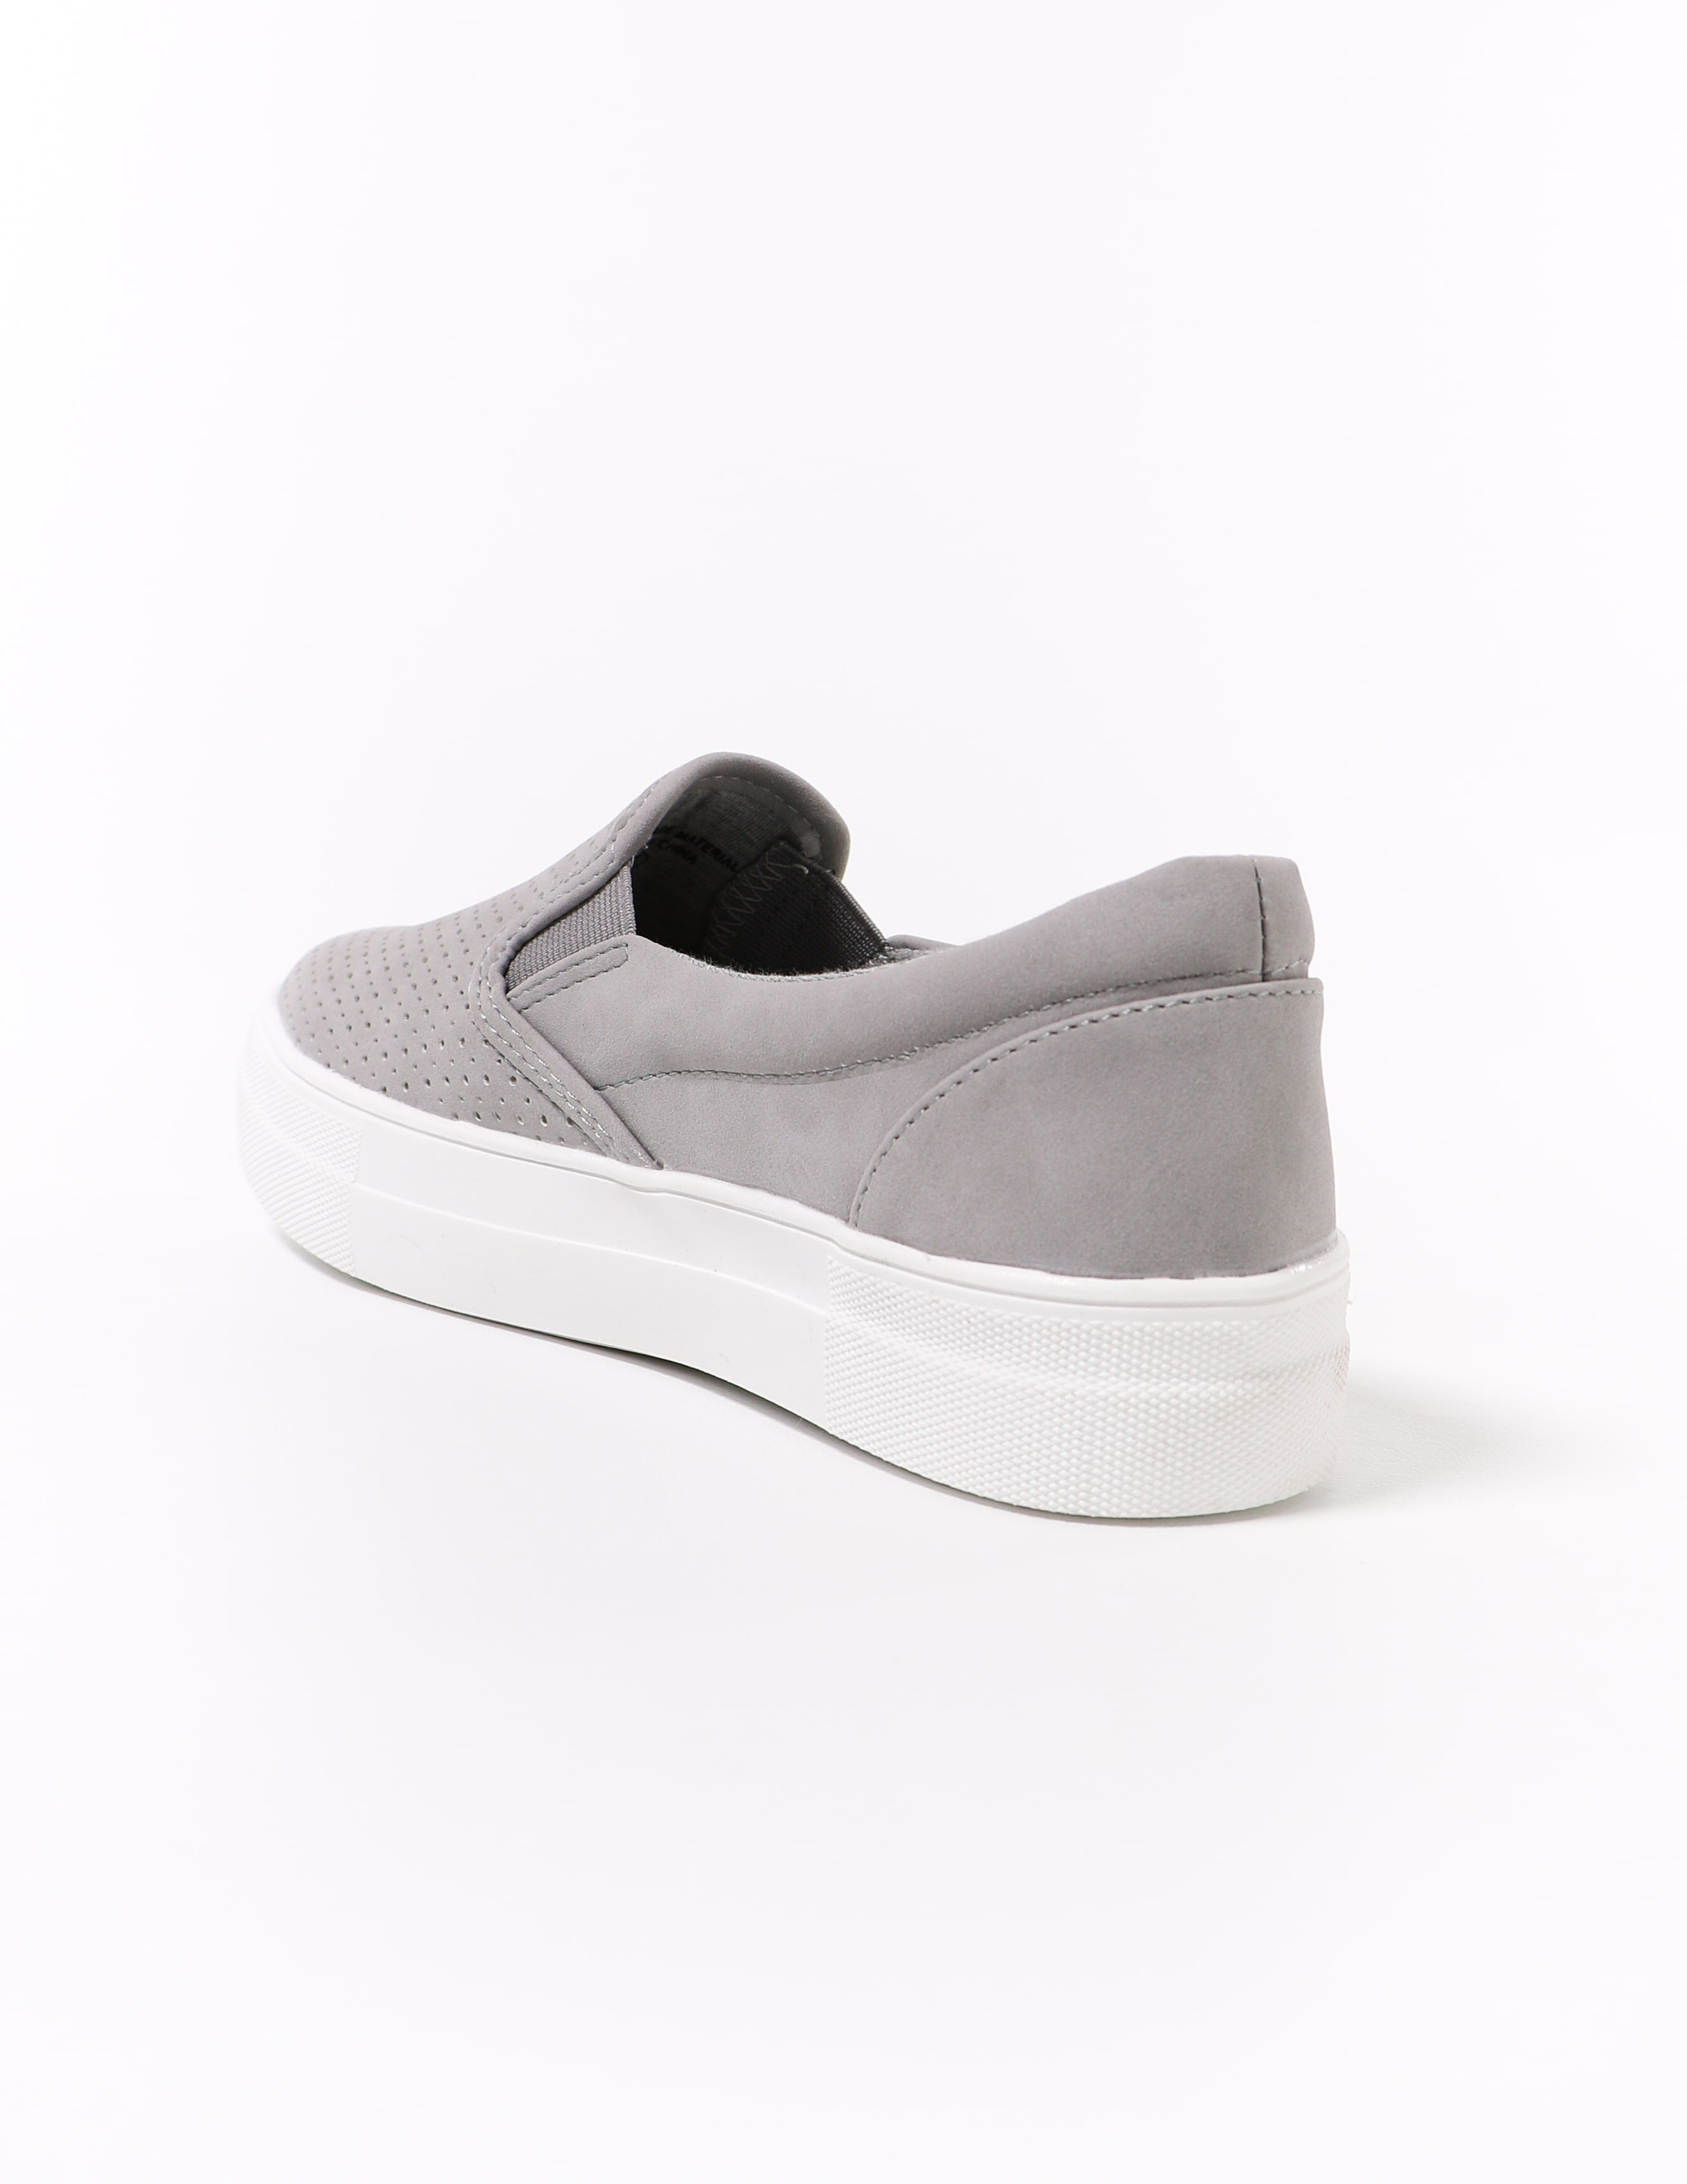 grey perf every penny soda sneaker on white background